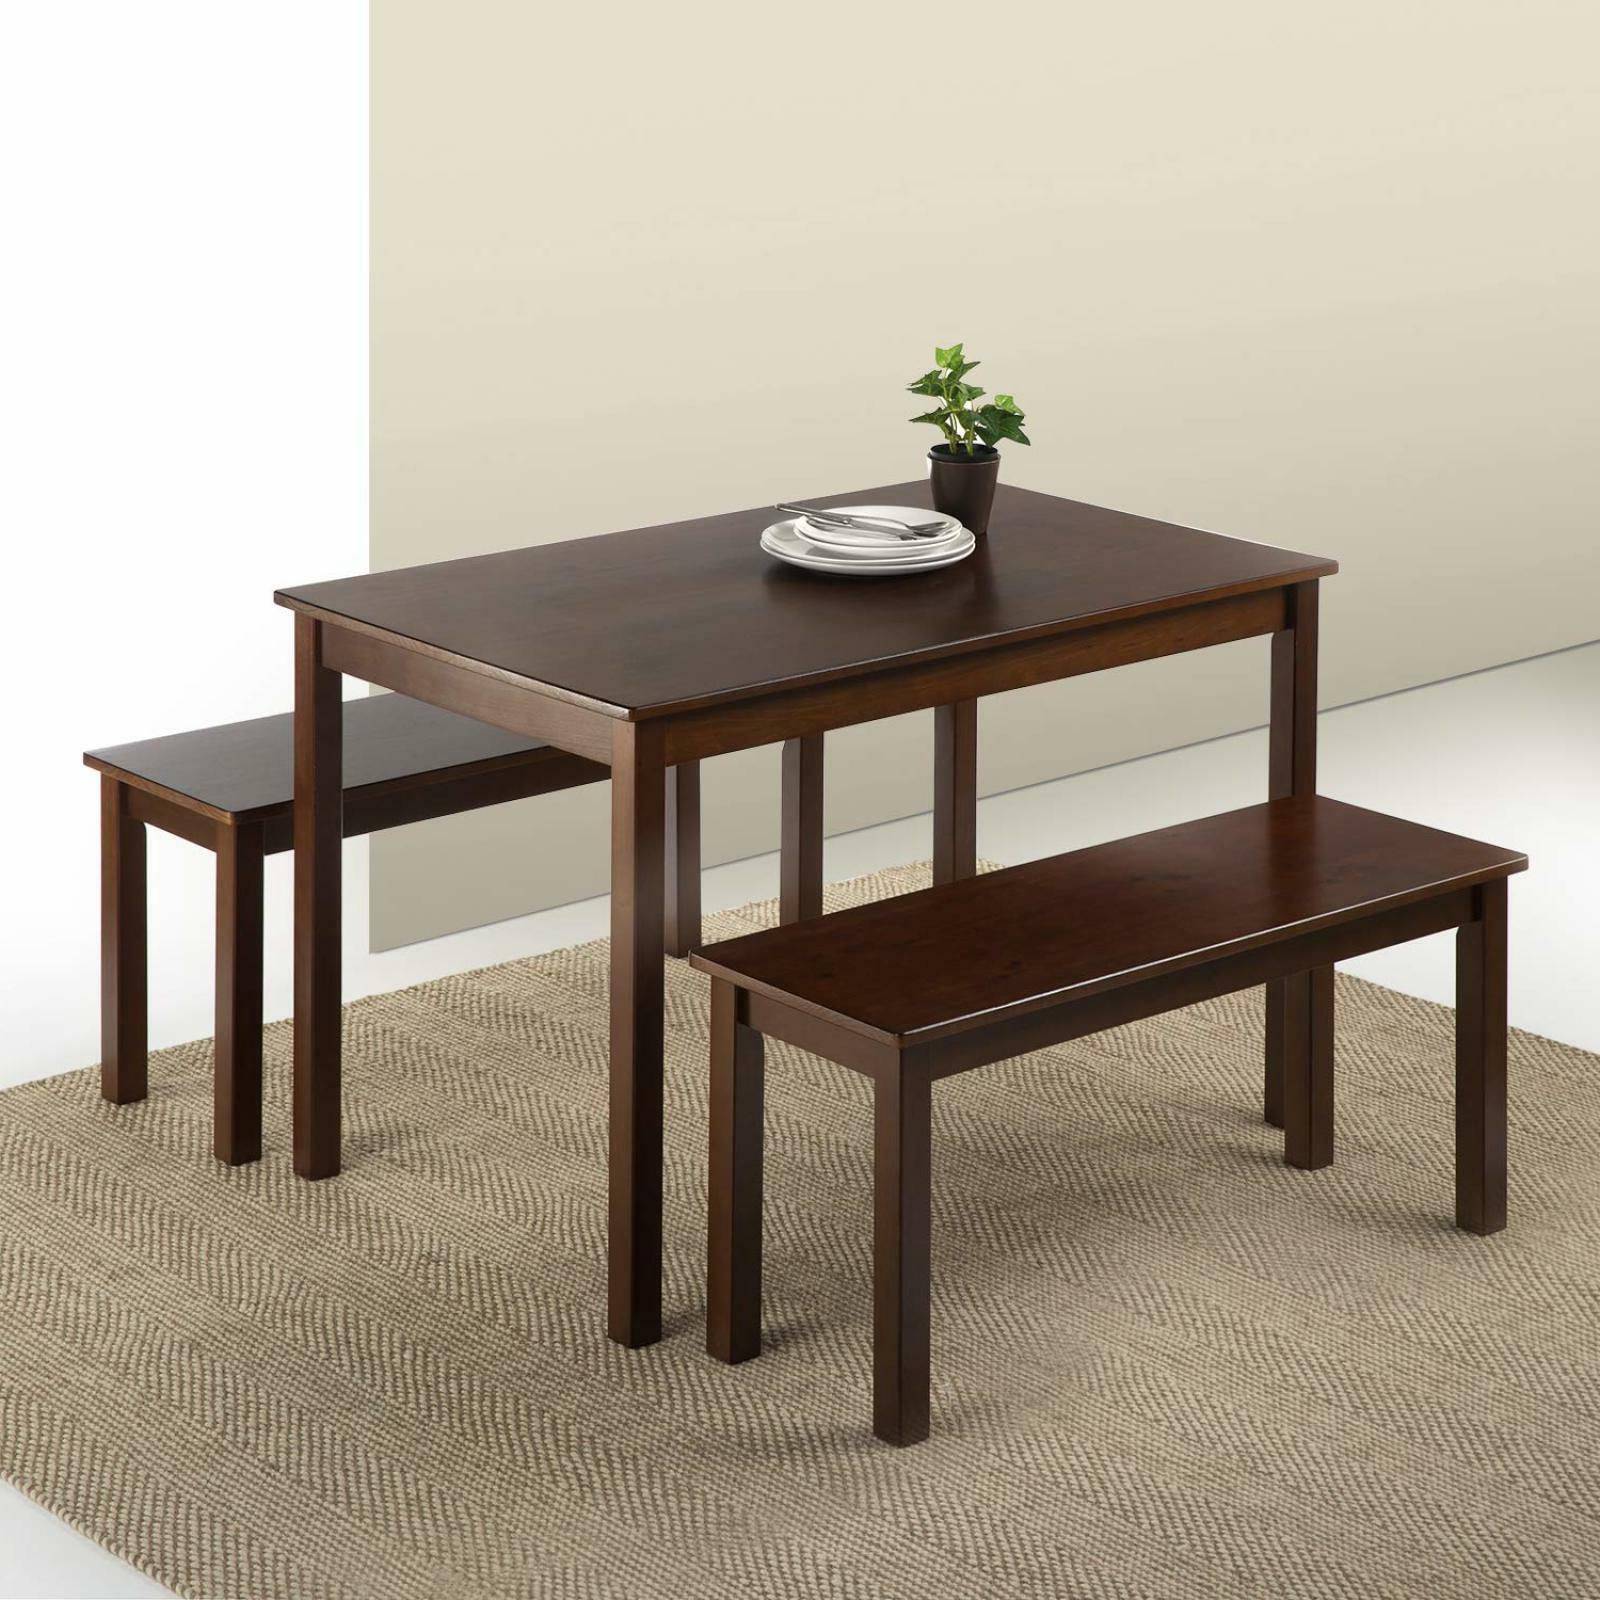 3 Piece Set Wood Dining Table Espresso With 2 Benches Kitche